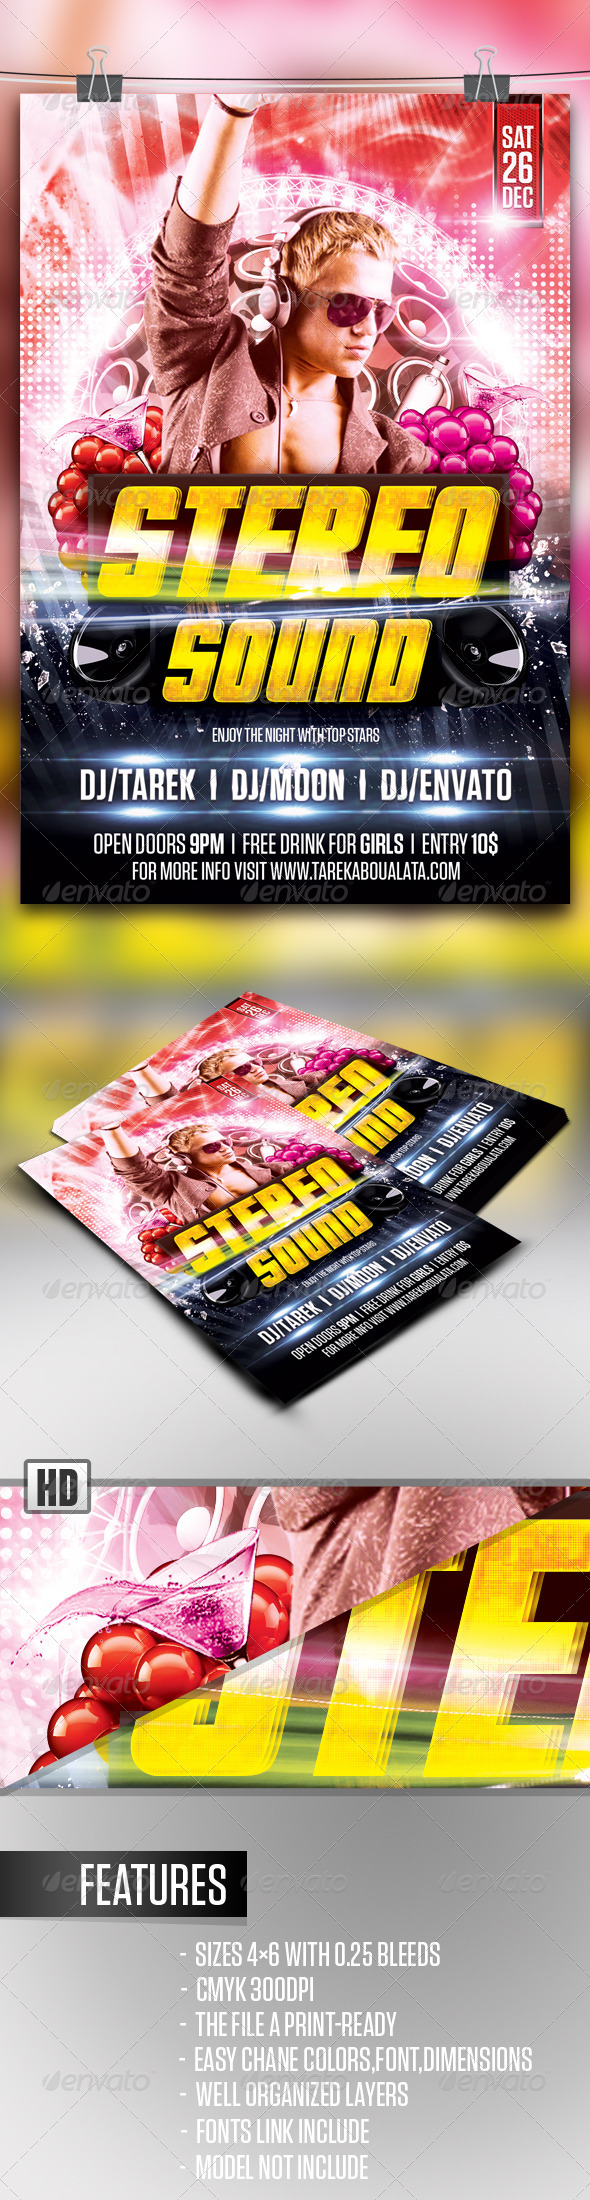 GraphicRiver Stereo Sound Flyer 3531779